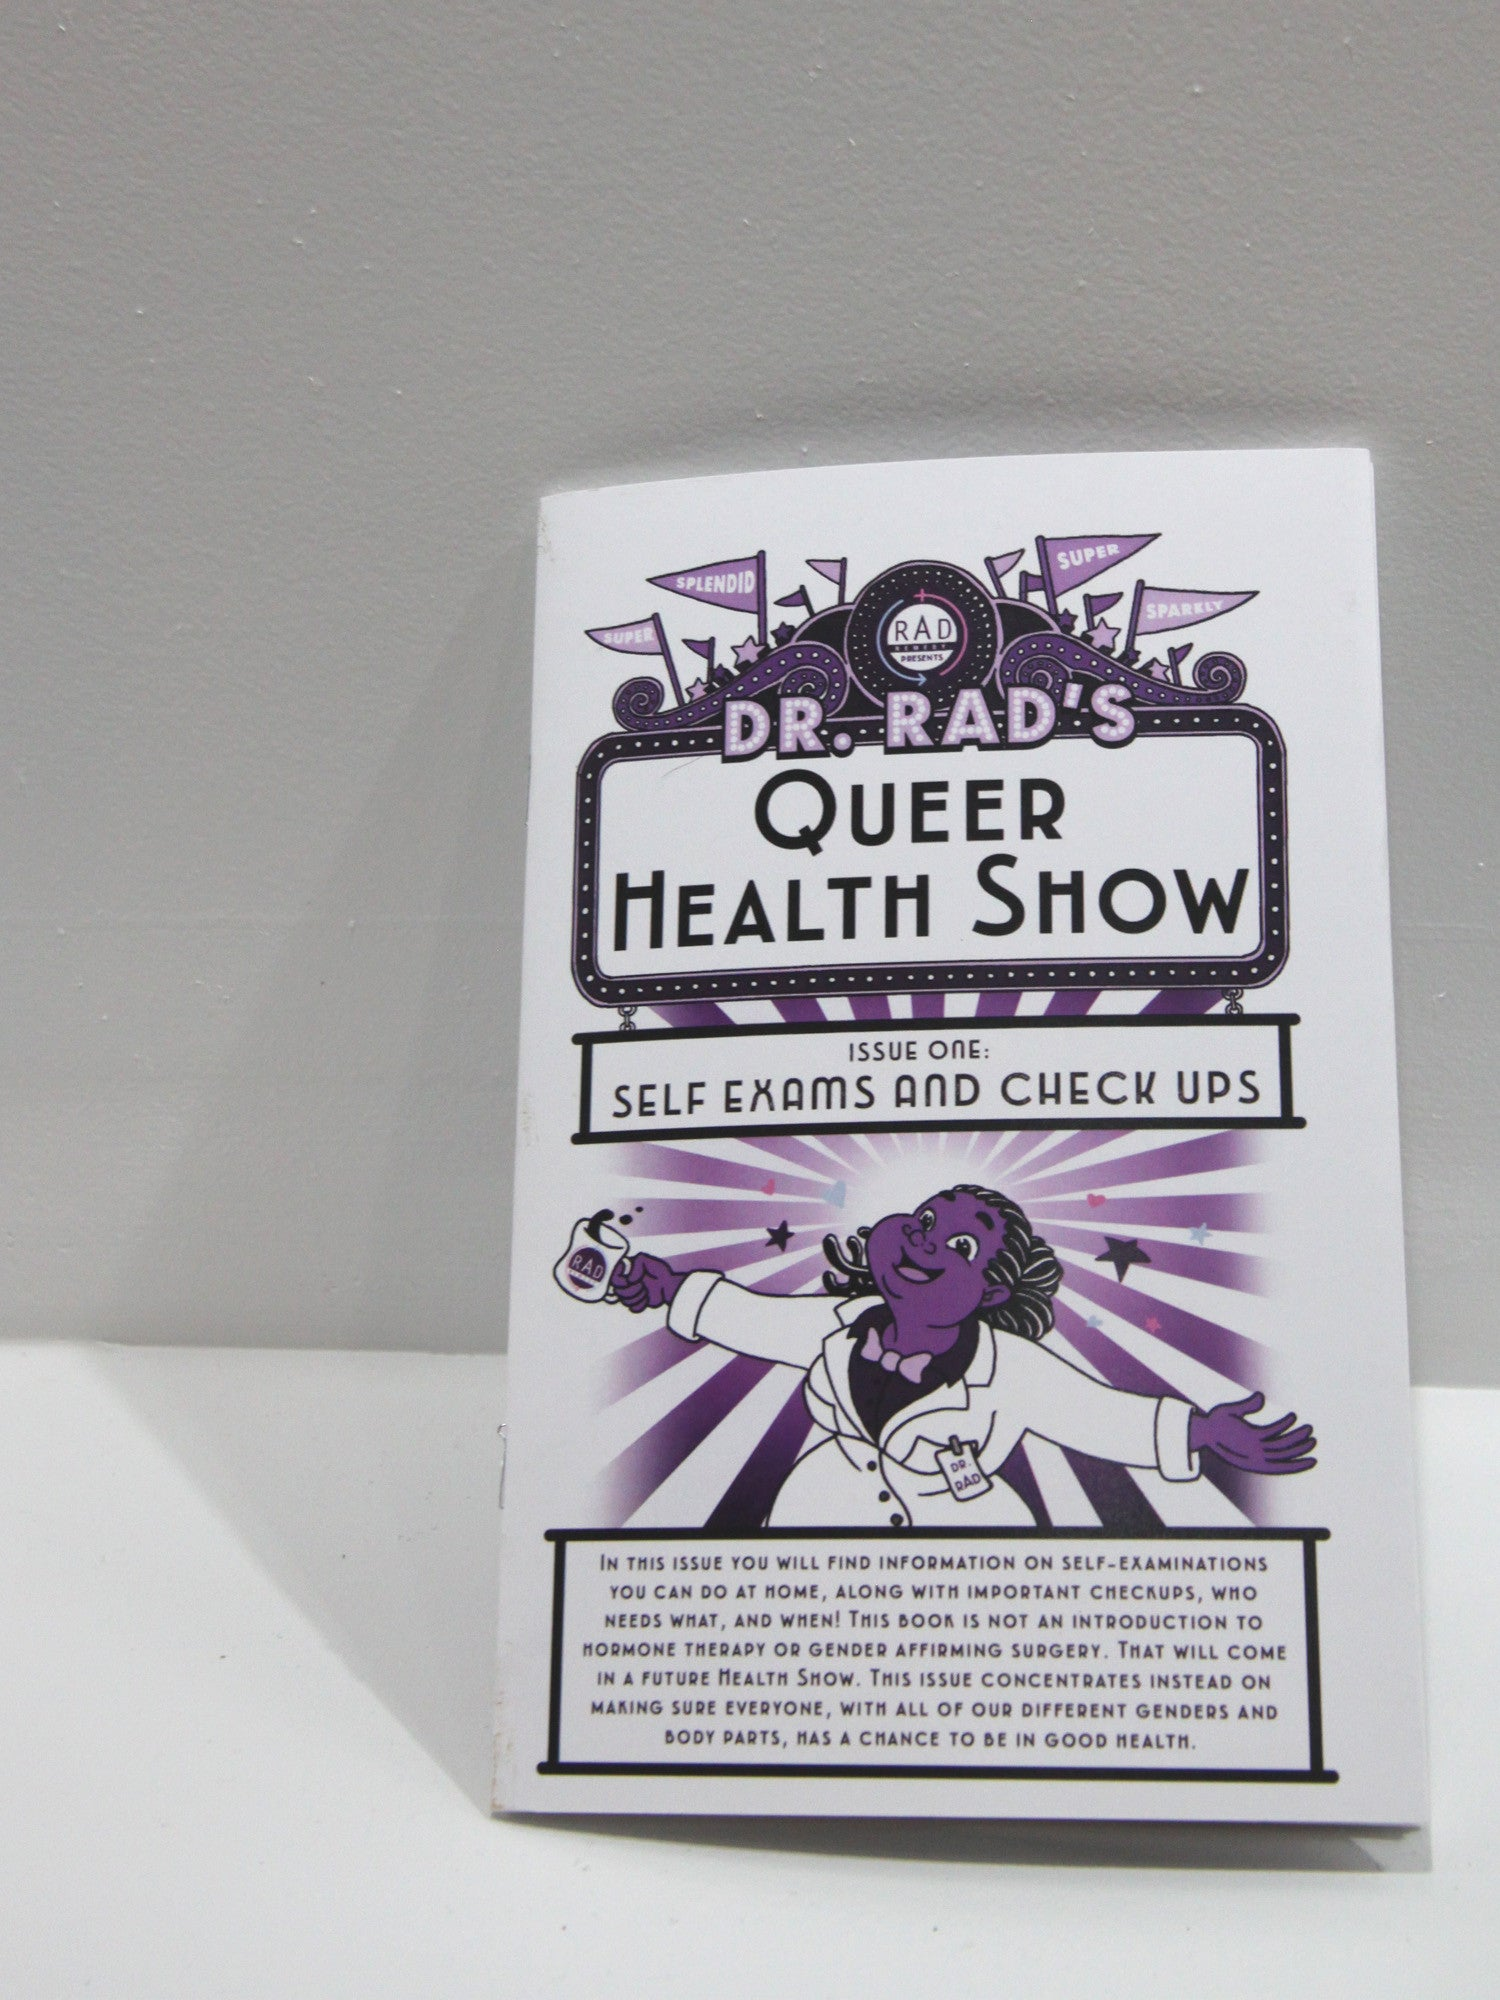 Dr. Rad's Queer Health Show No. 1 - Sustain - Gallery and Workspace | Art, Prints, Zines, Workshops | Chicago, IL